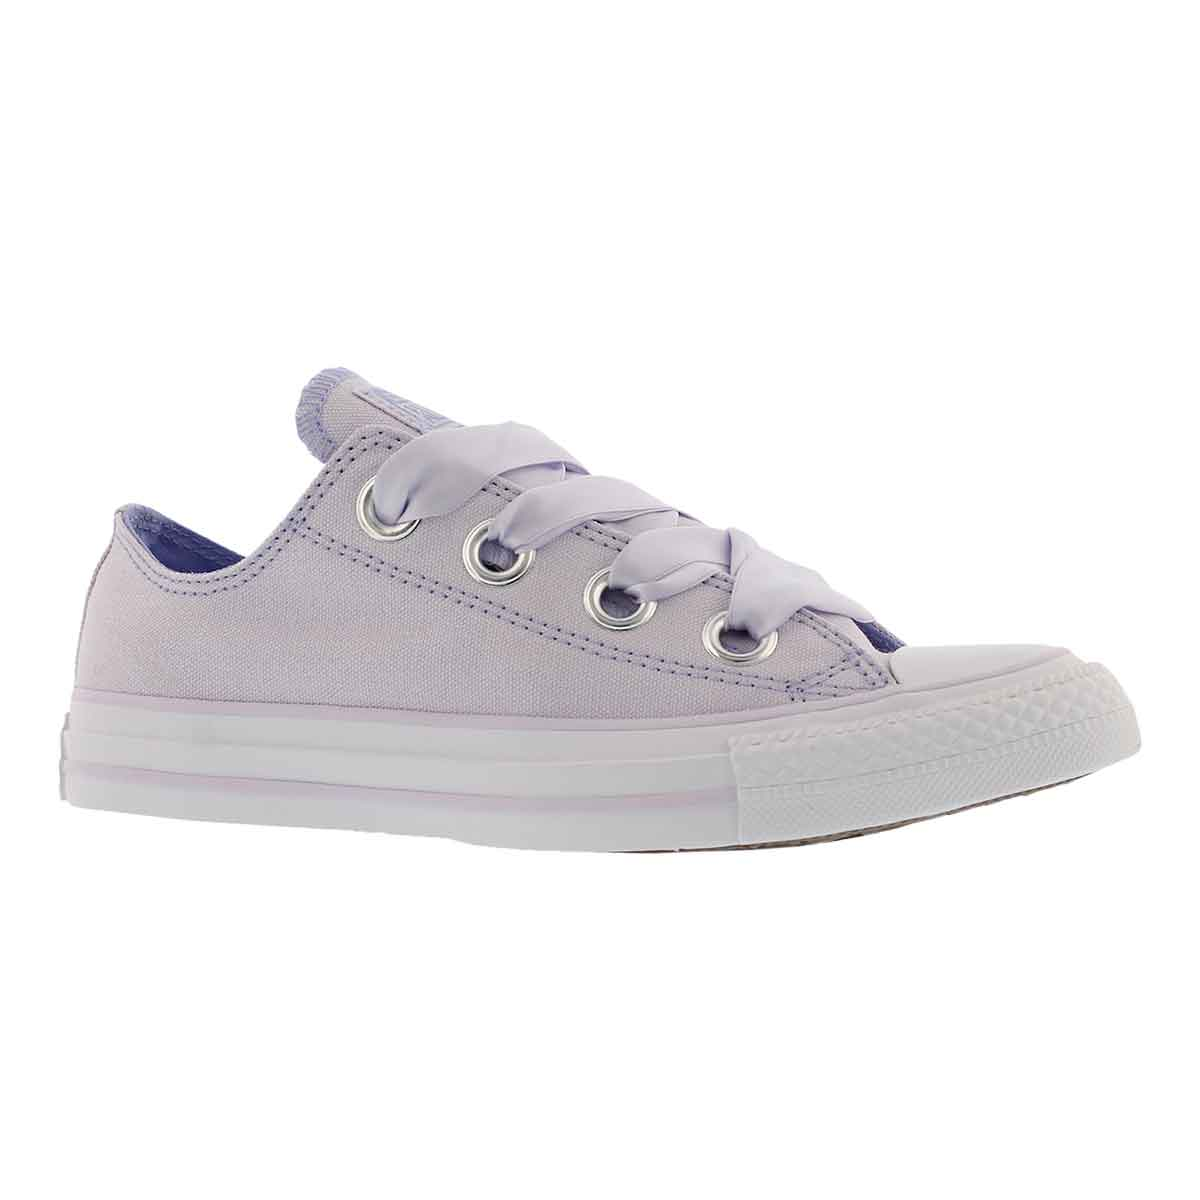 Women's CT ALL STAR BIG EYELETS barely gp sneakers